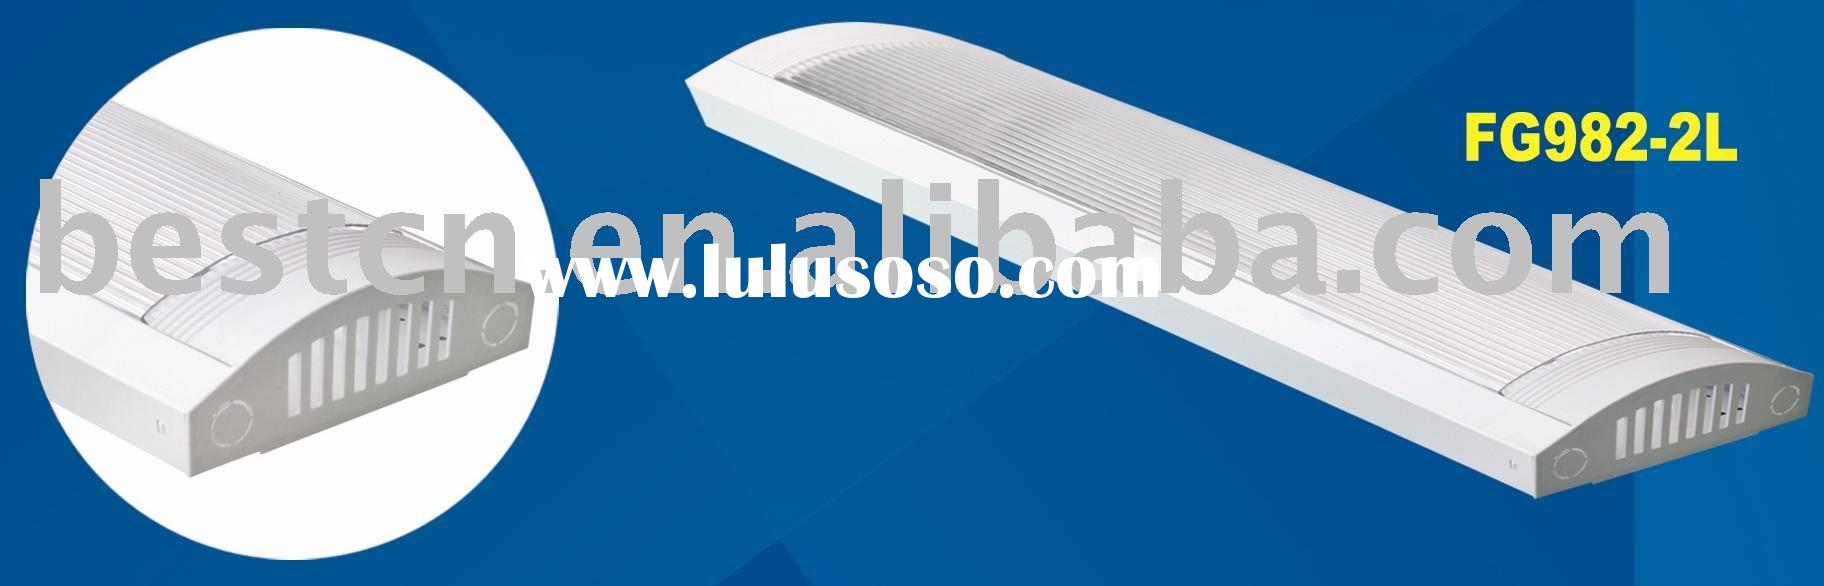 Fluorescent fitting with PS cover T8 2F18W/30W/36W FG982-2L